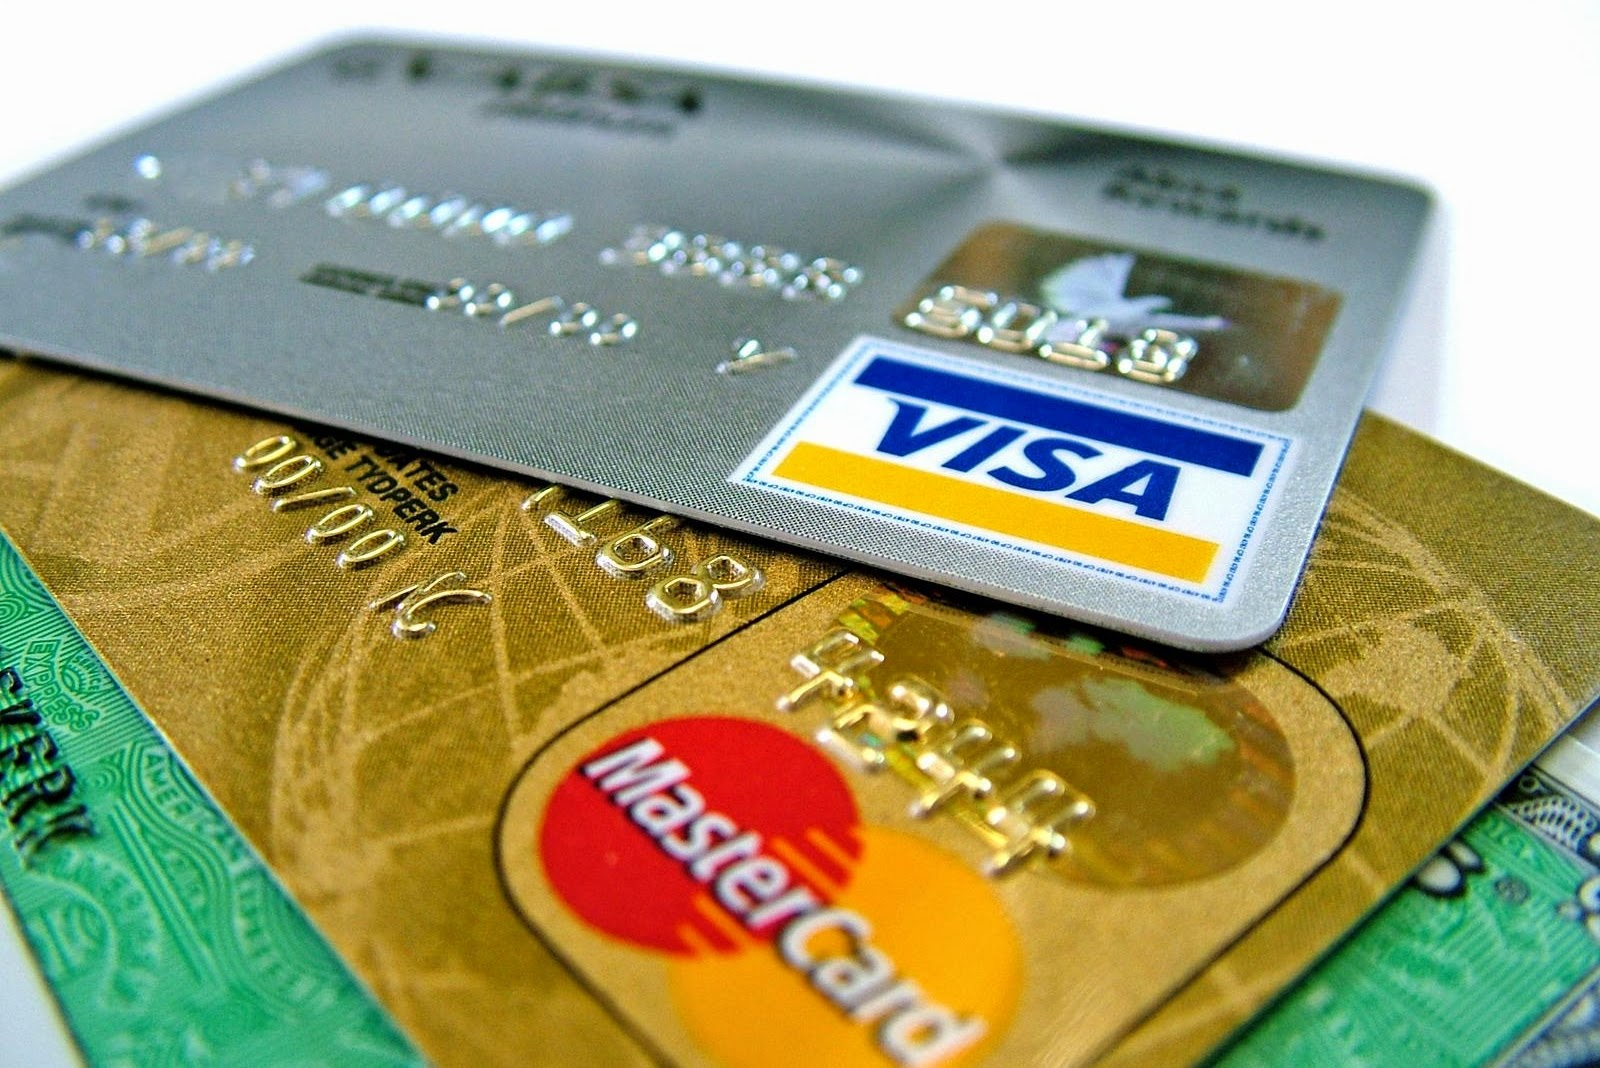 reasons to use credit cards